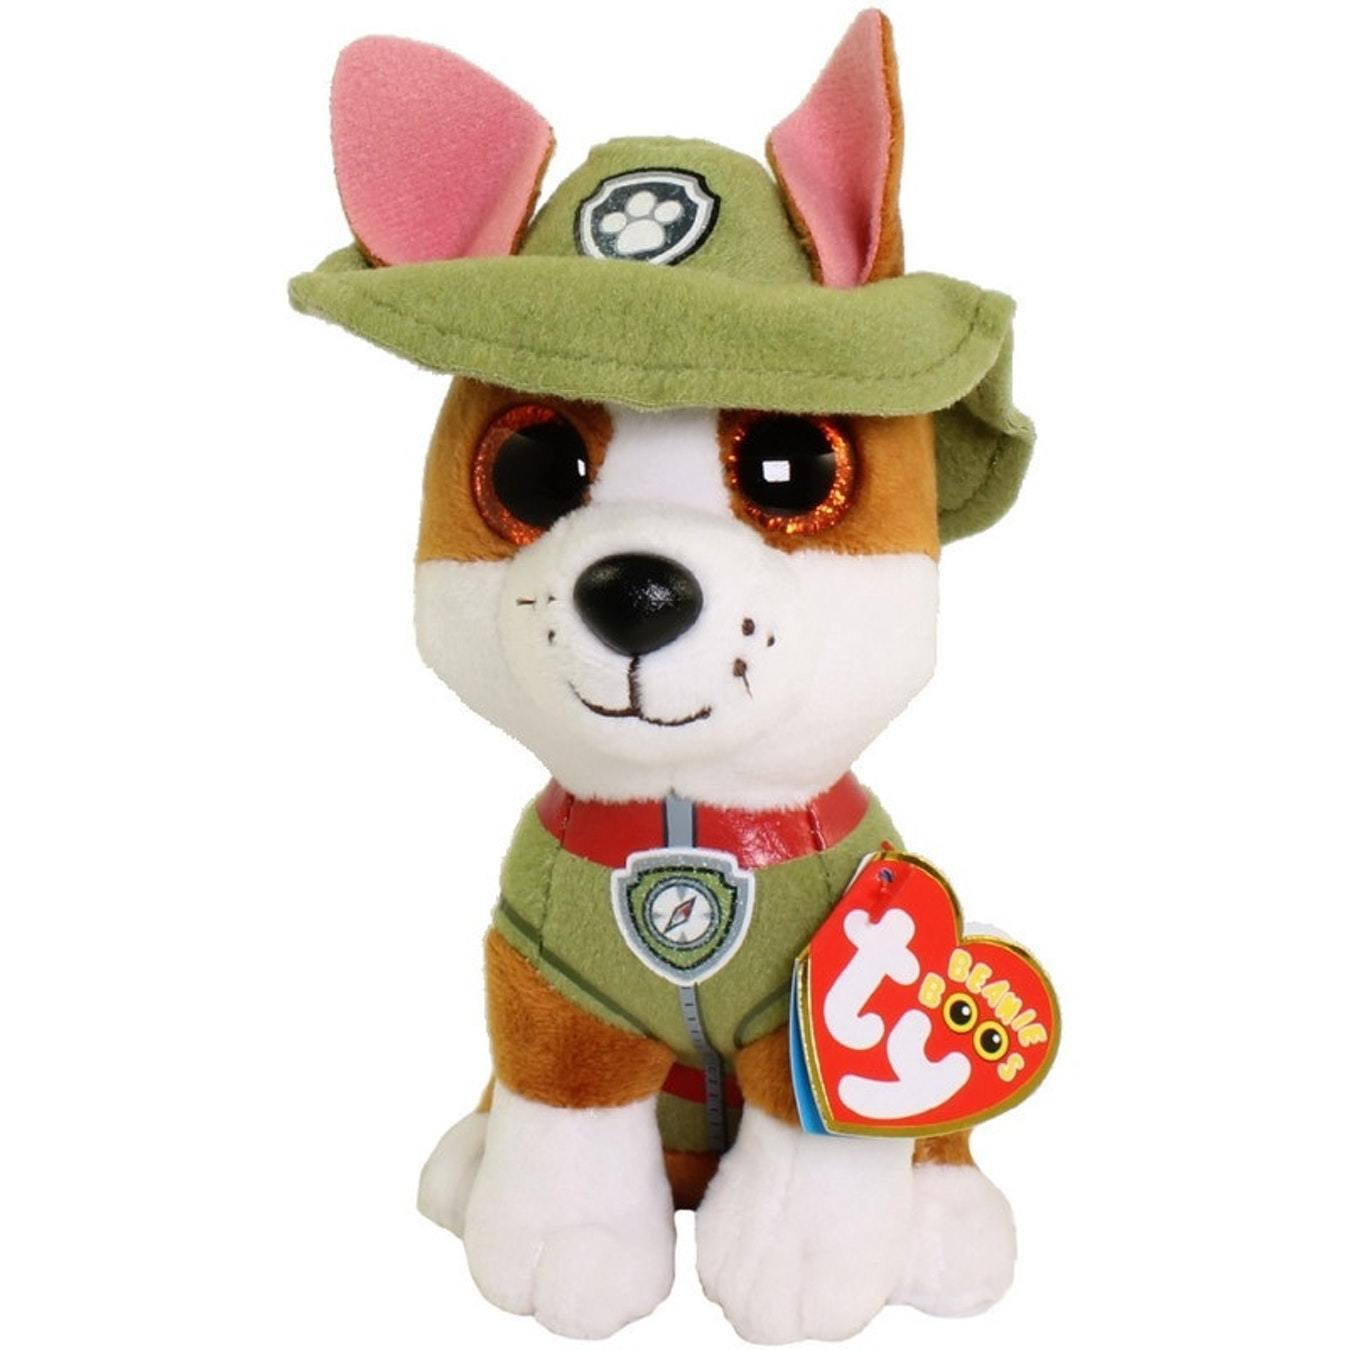 Nickelodeon Paw Patrol Tracker TY soft toy